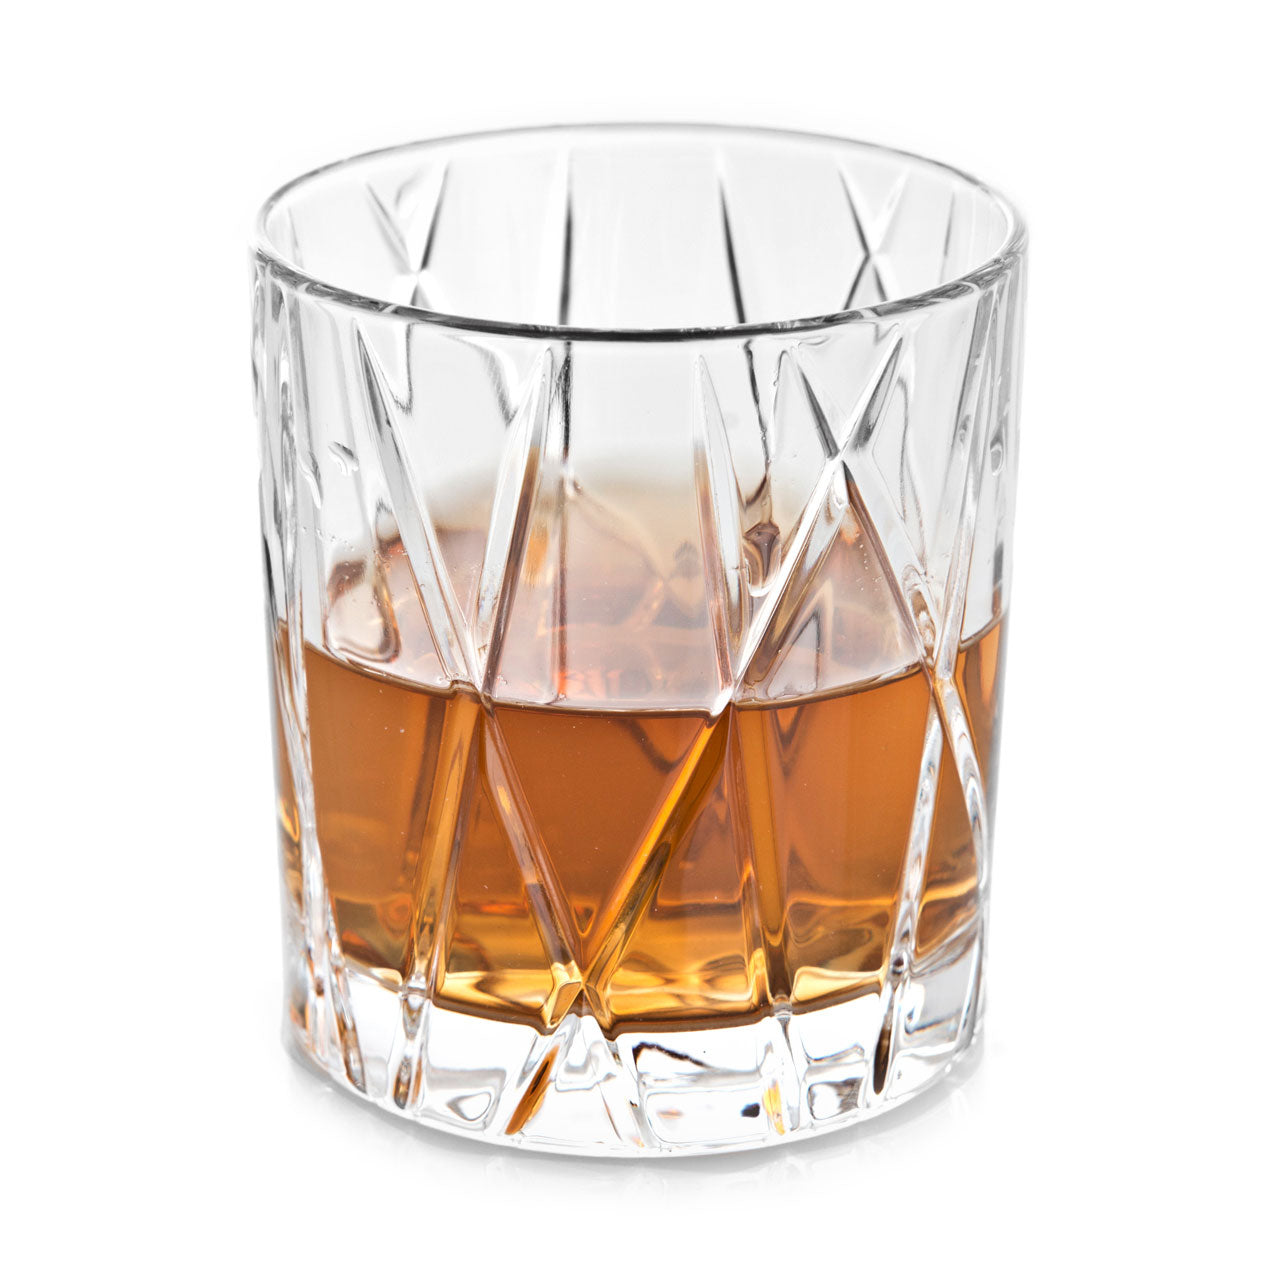 Orrefors City Old Fashioned Glasses